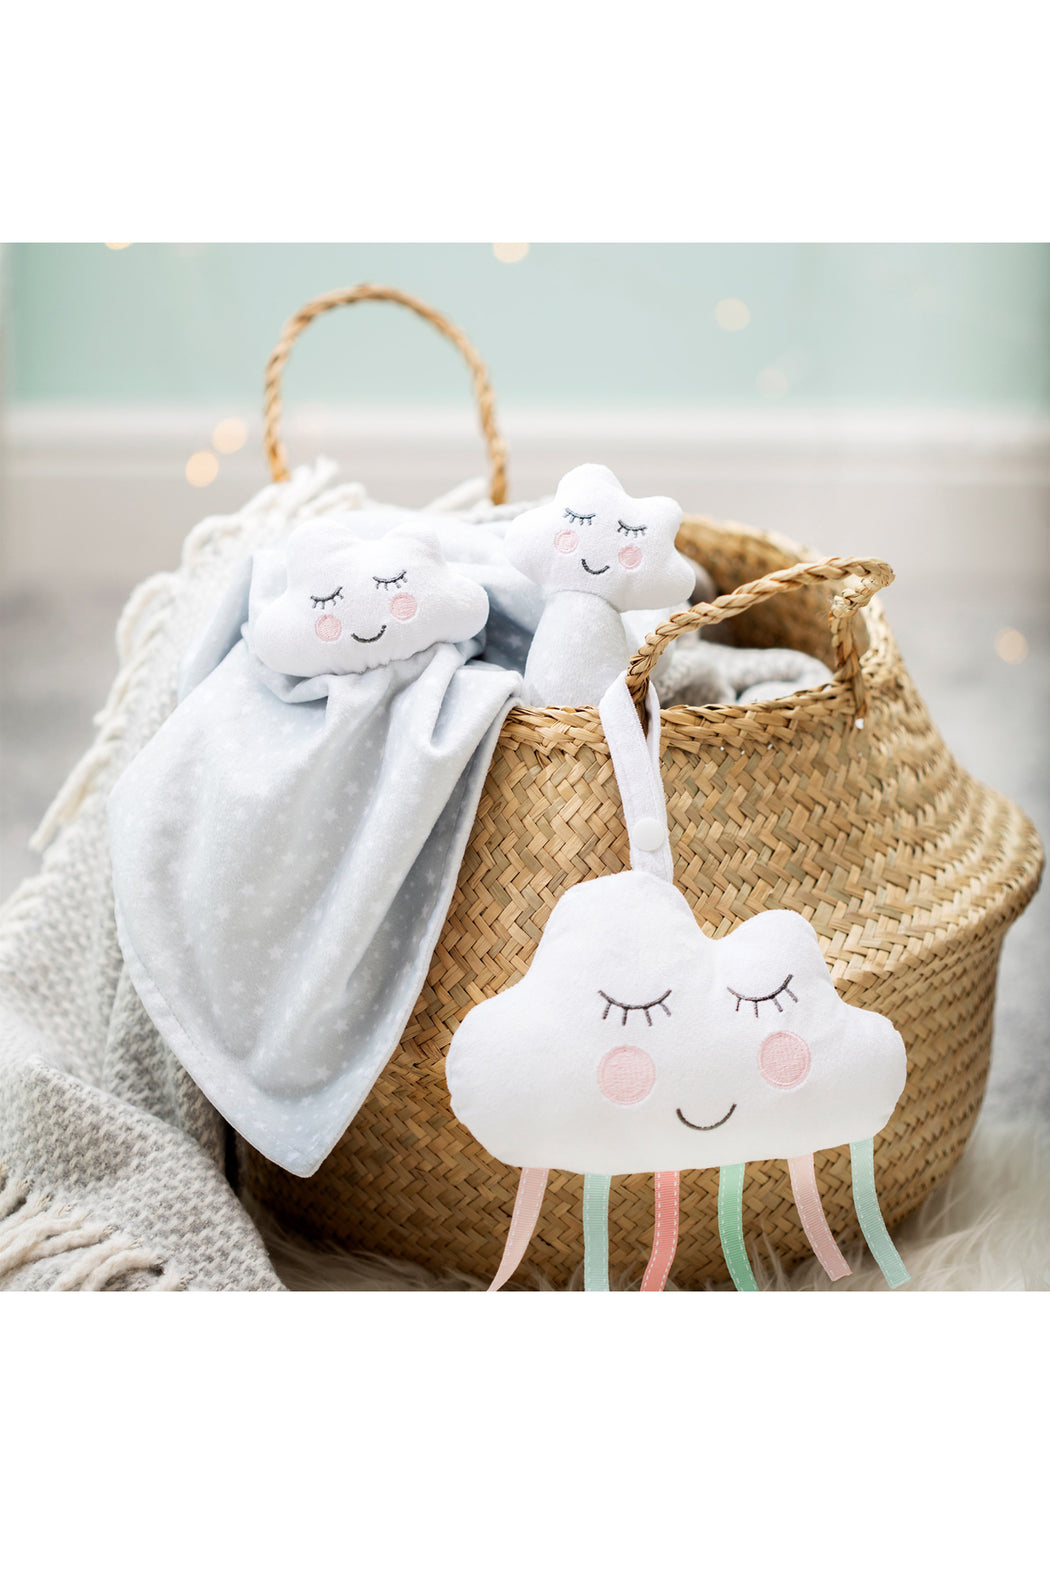 Sweet Dreams Cloud Baby Comforter, Cushion, Sass & Belle - 3LittlePicks